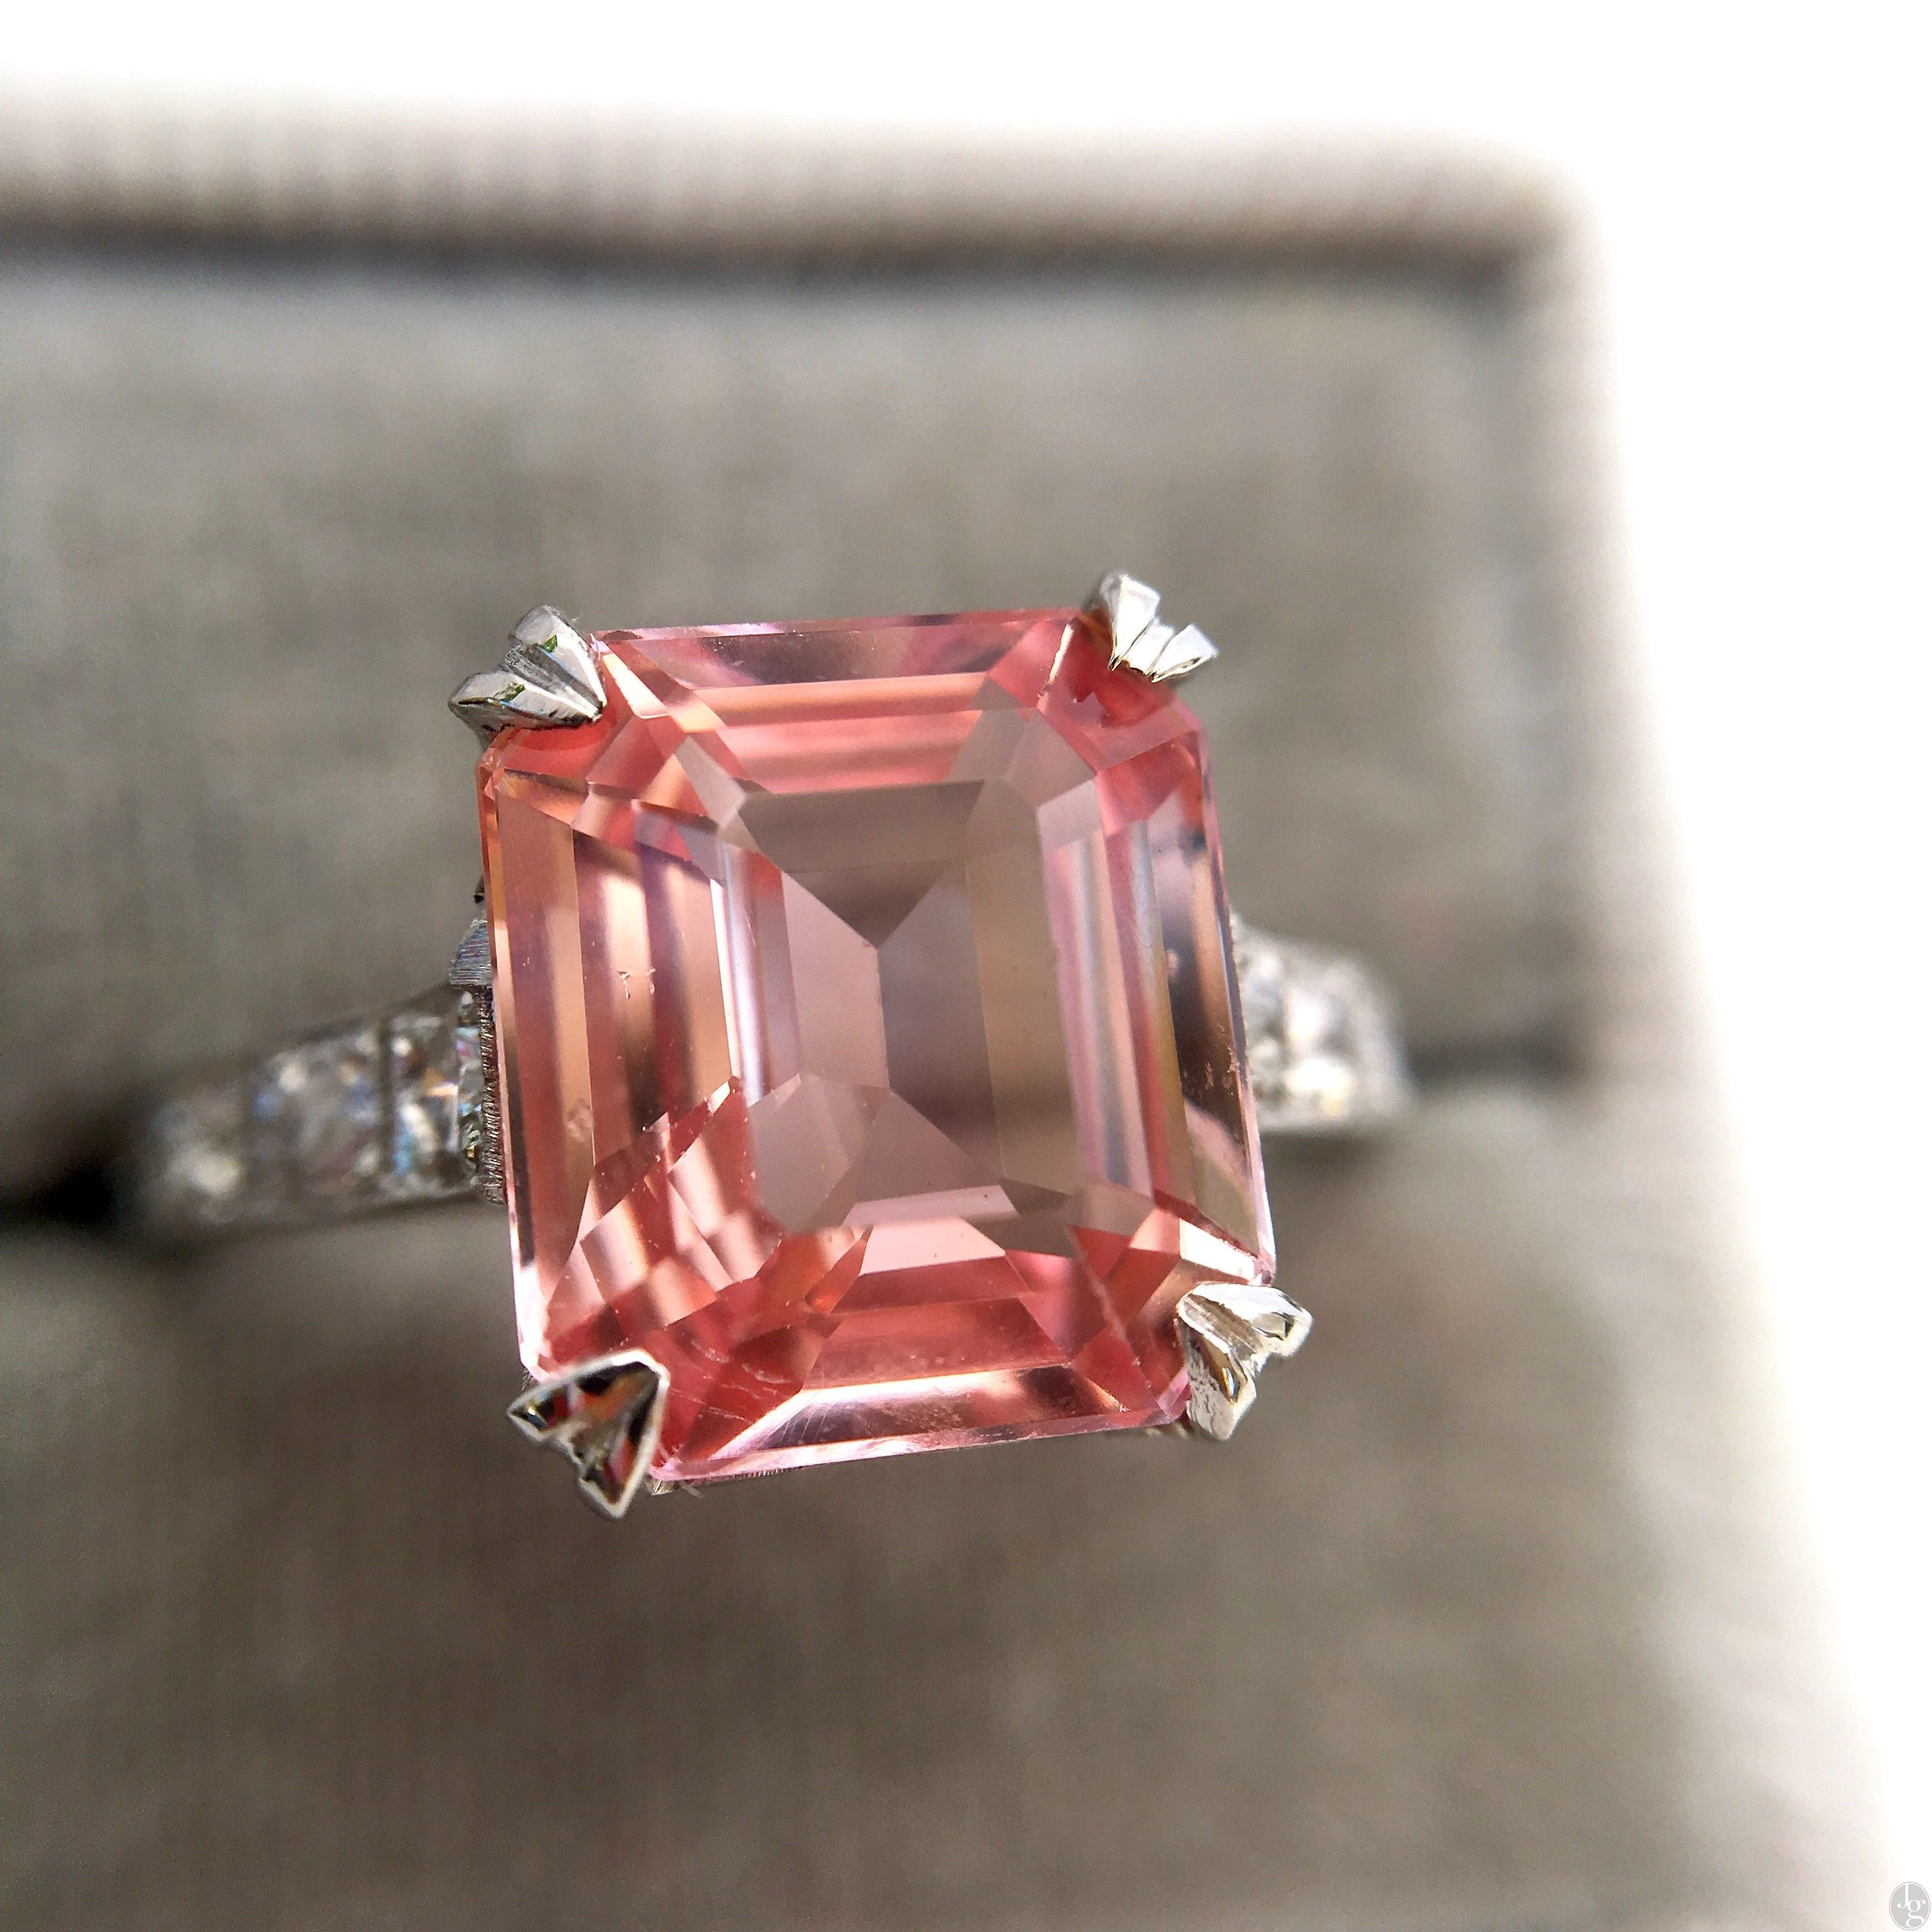 Ct padparadscha sapphire art deco ring gia no heat dreaming